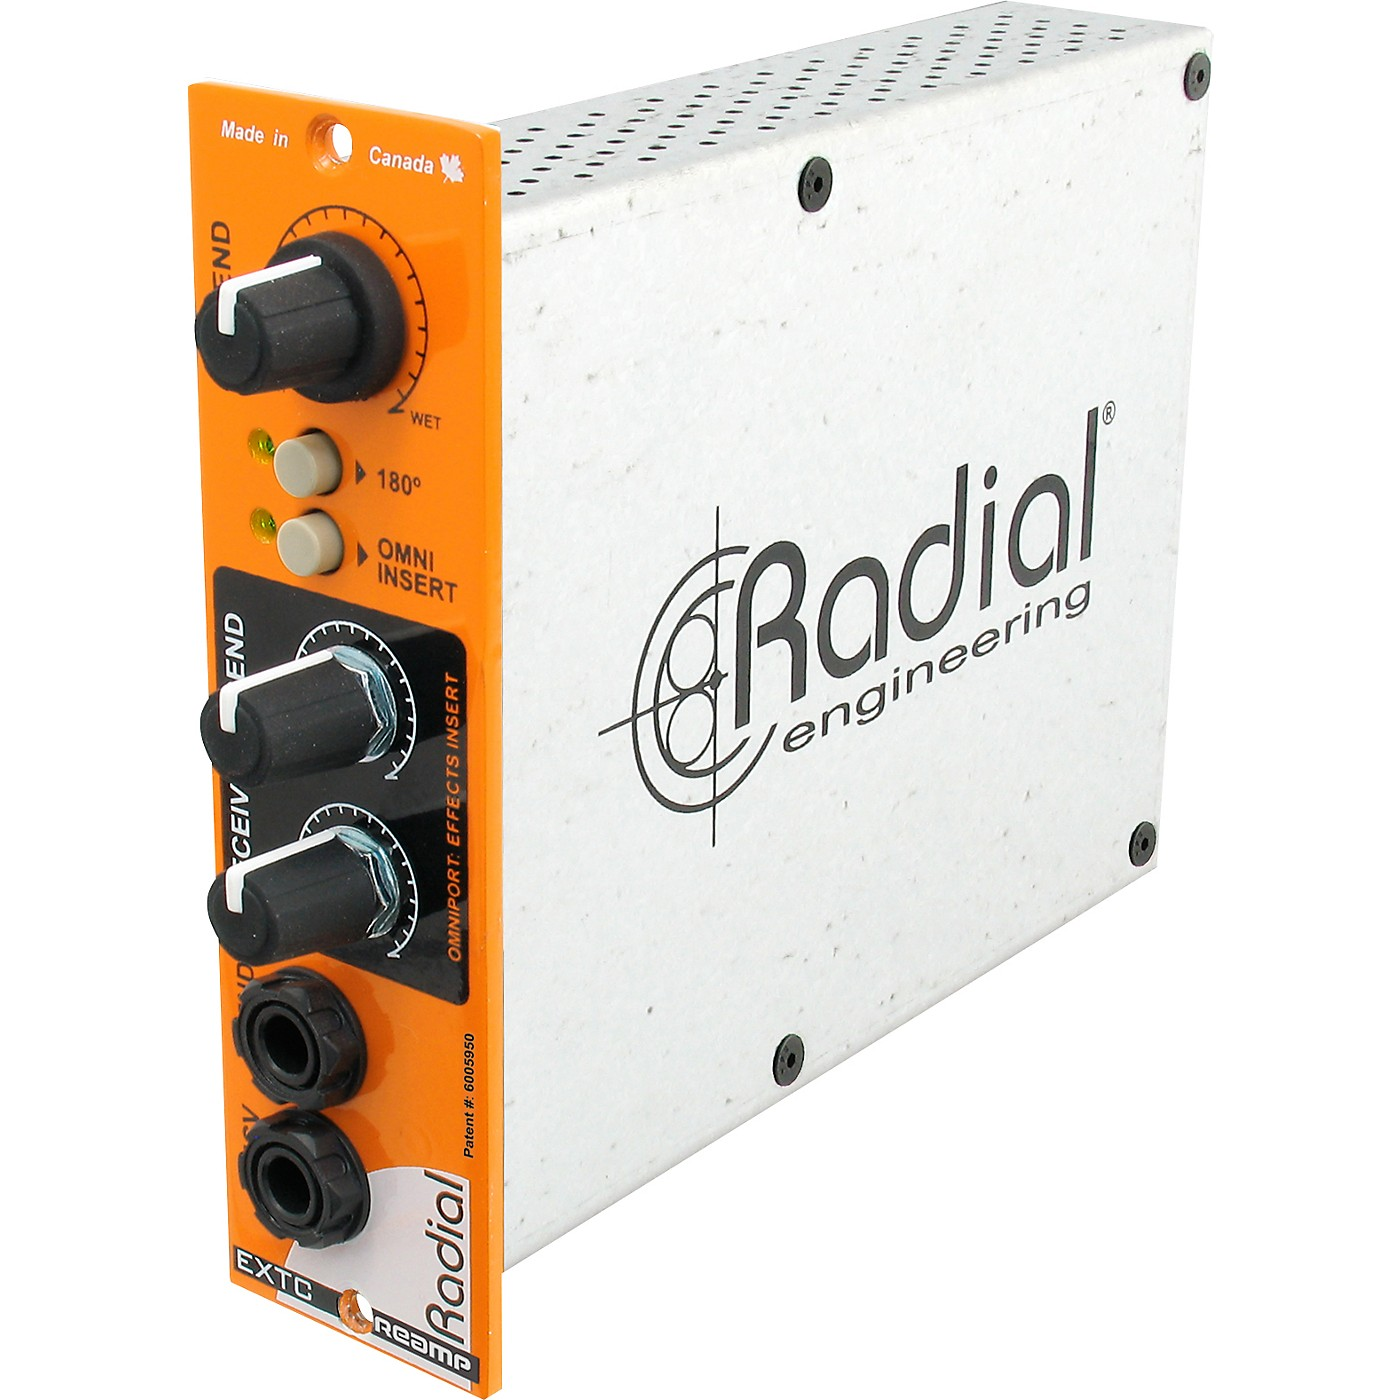 Radial Engineering EXTC 500 Reamp Guitar Effects Interface thumbnail